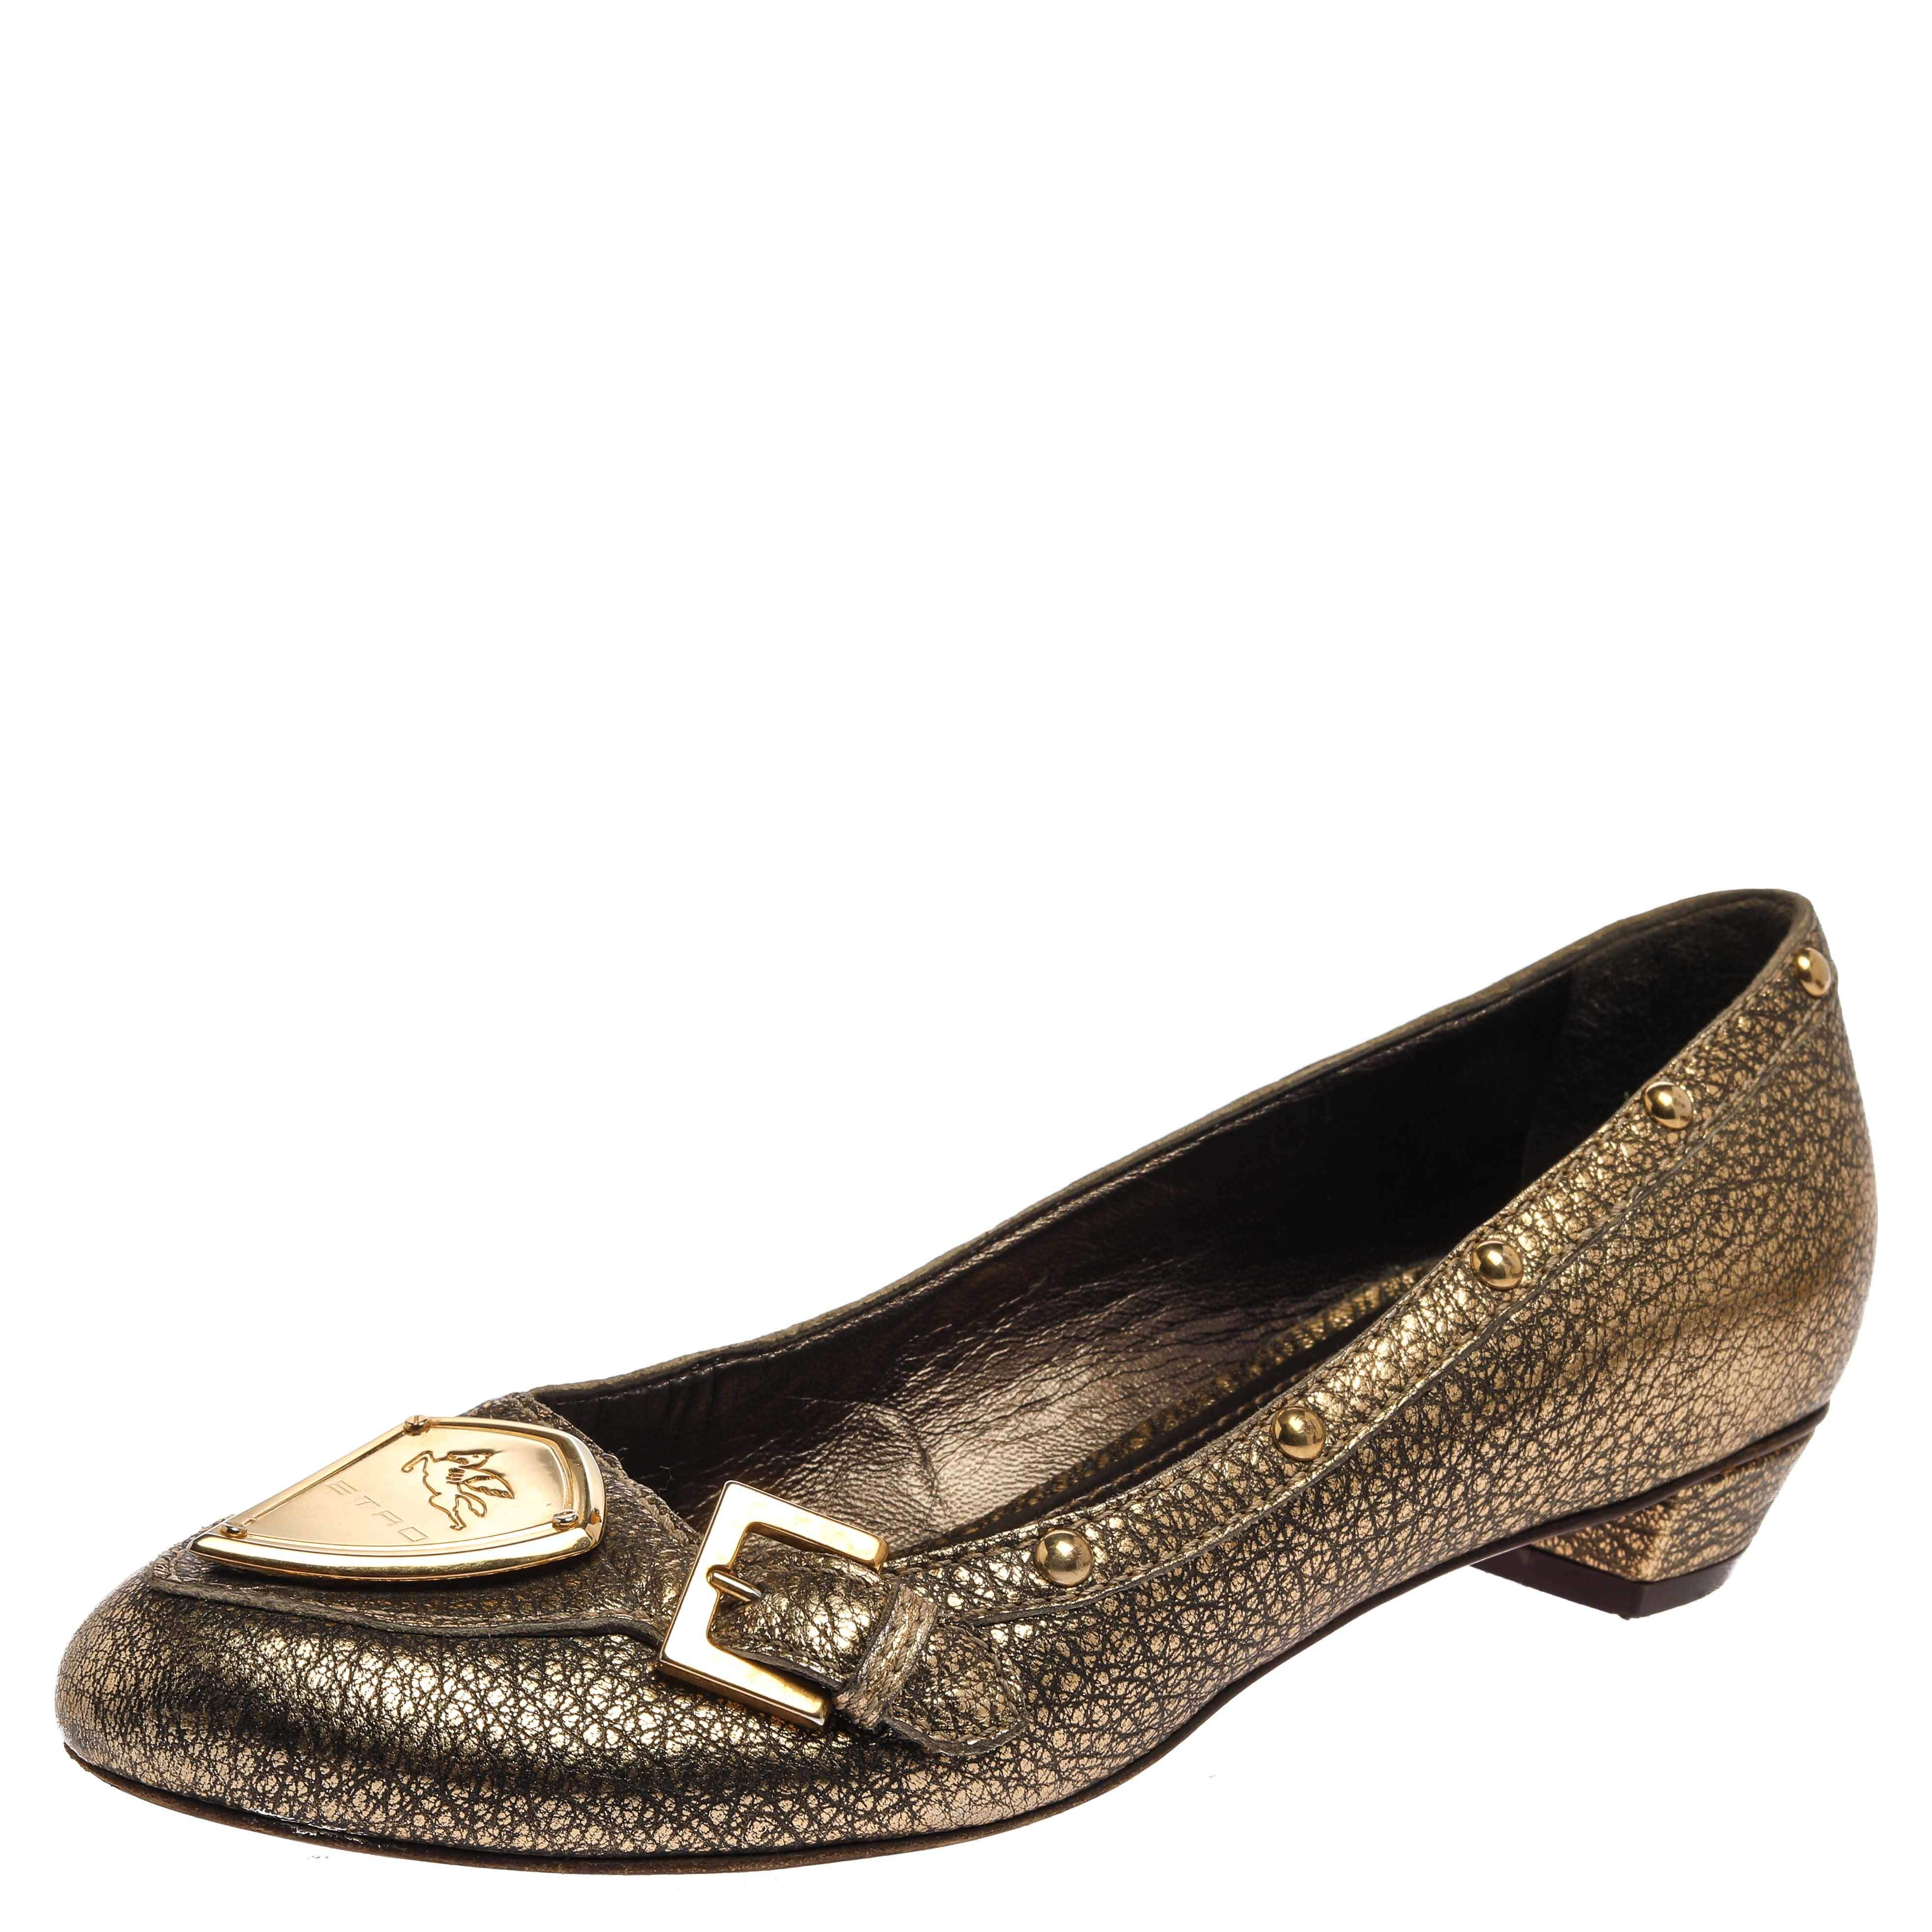 Etro Metallic Gold Leather Buckle Detail Studded Flats Size 38